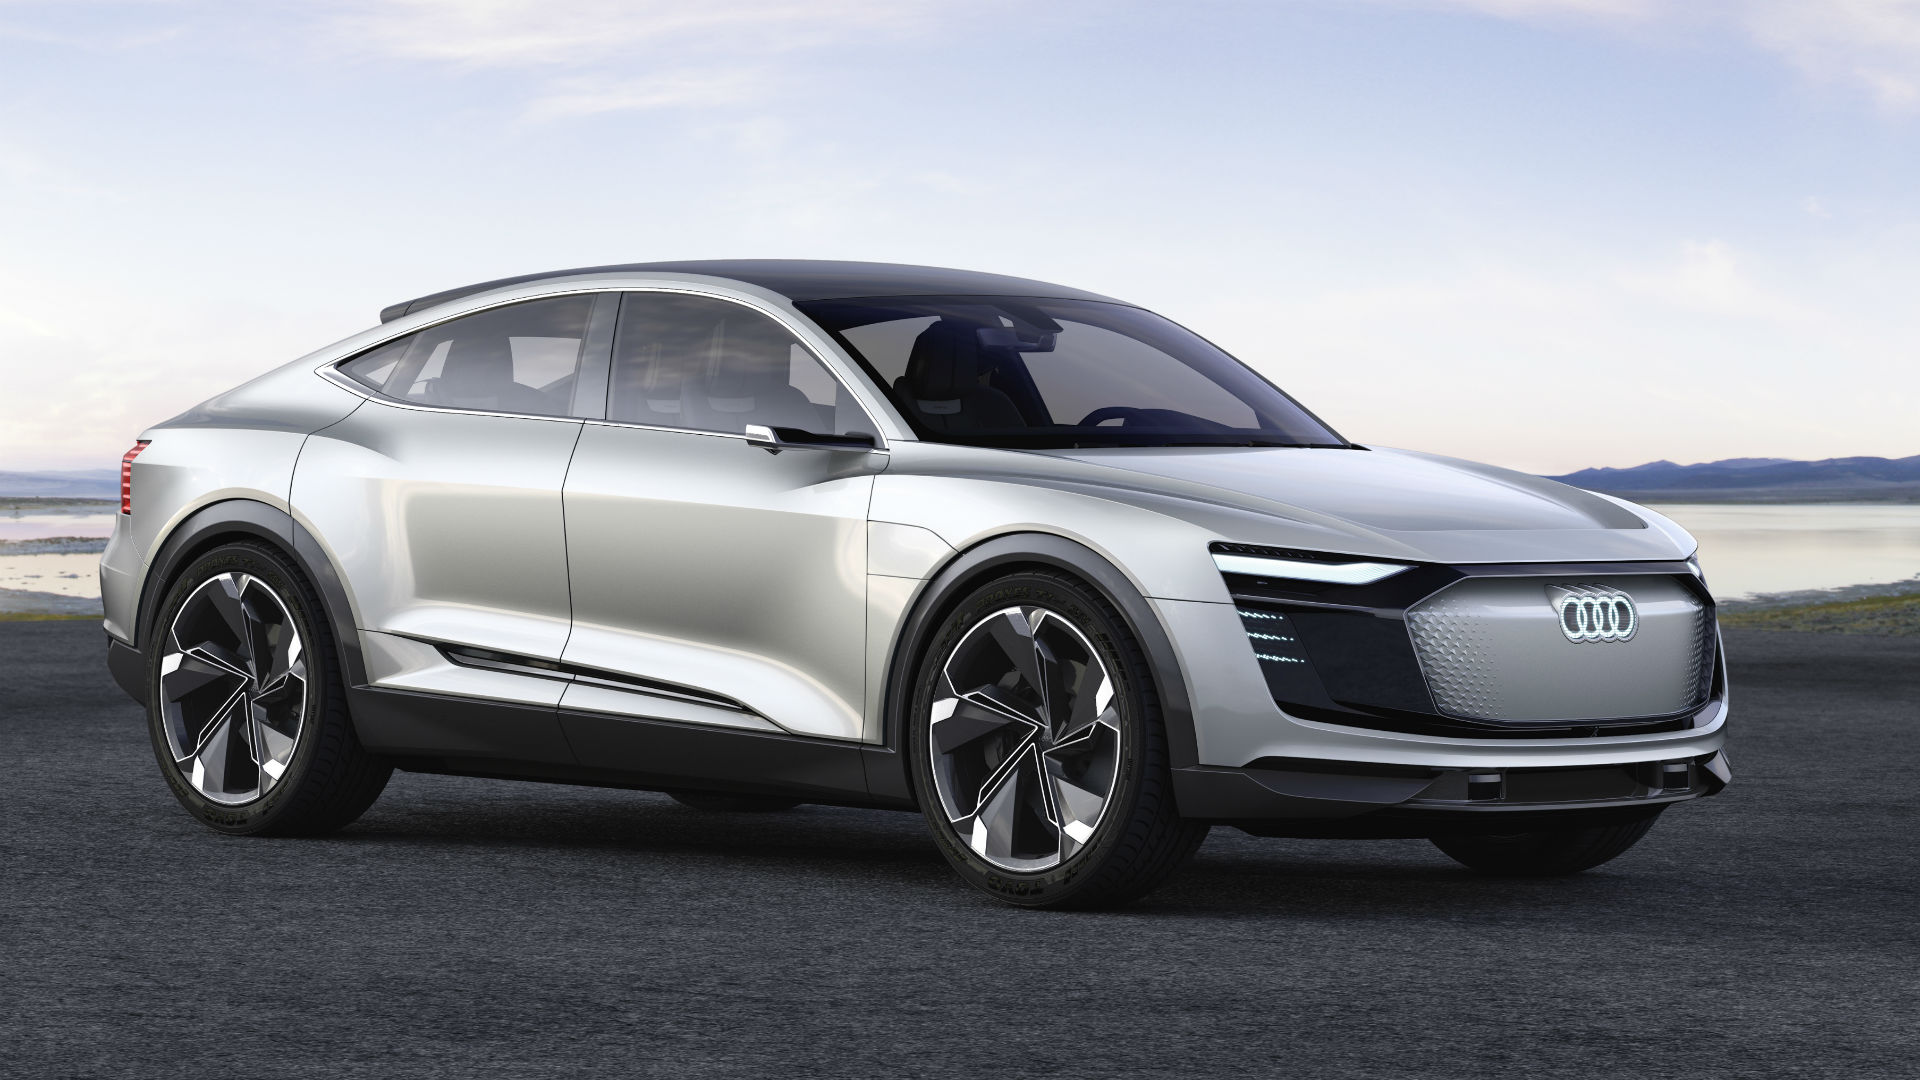 Audi E Tron Sportback Set To Launch In 2018 Compete With Model X